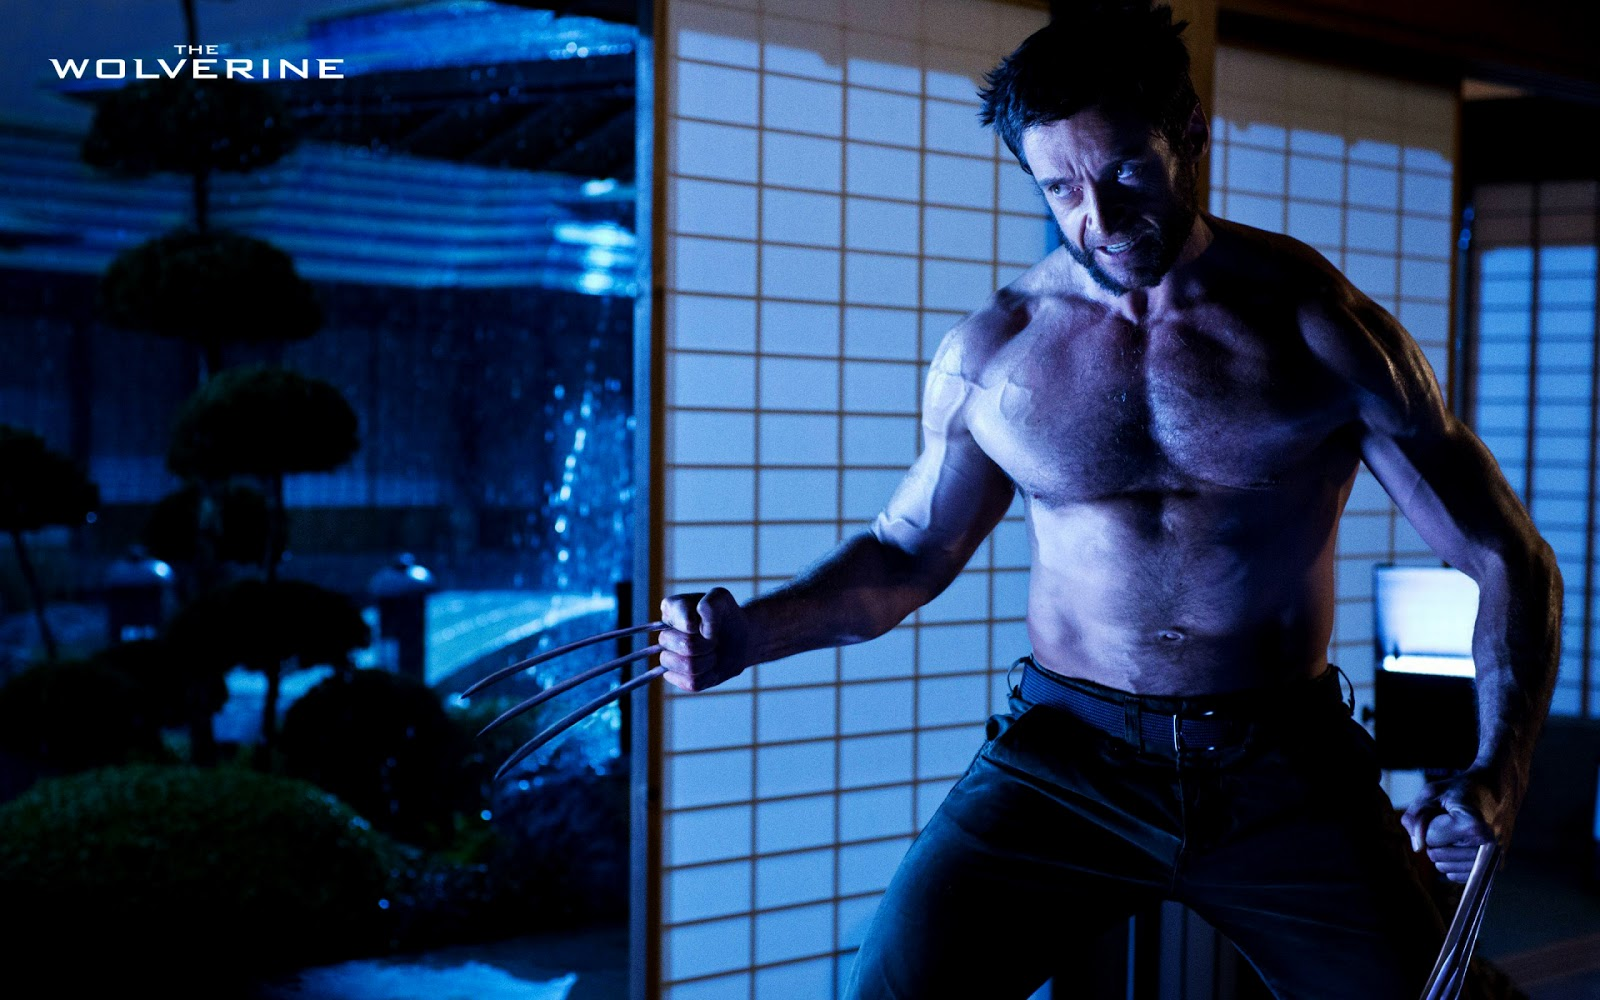 The Wolverine 2013: Marvel's The Wolverine 2013 Movie HD Wallpapers